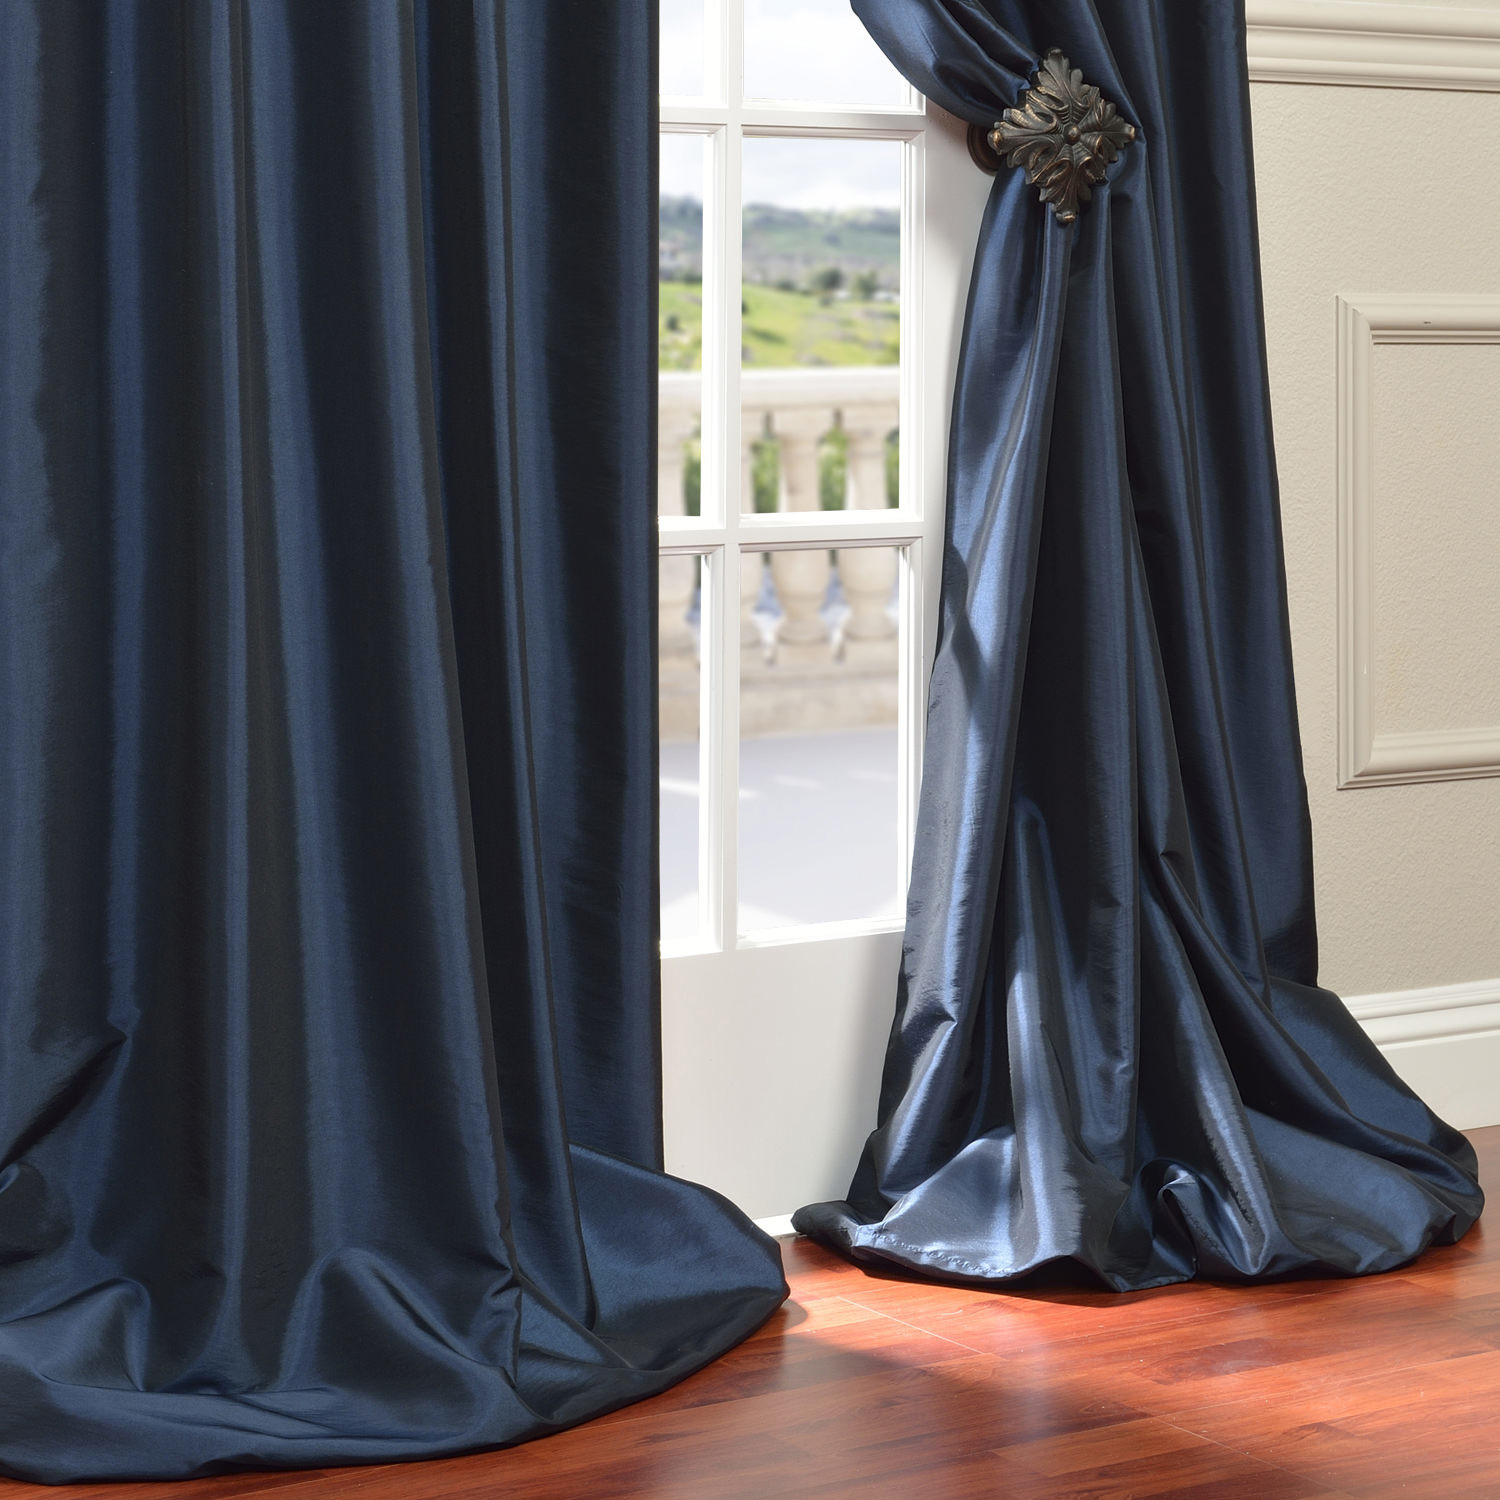 24 Inch Tier Curtains | Blackout Window Curtains | Kohls Drapes